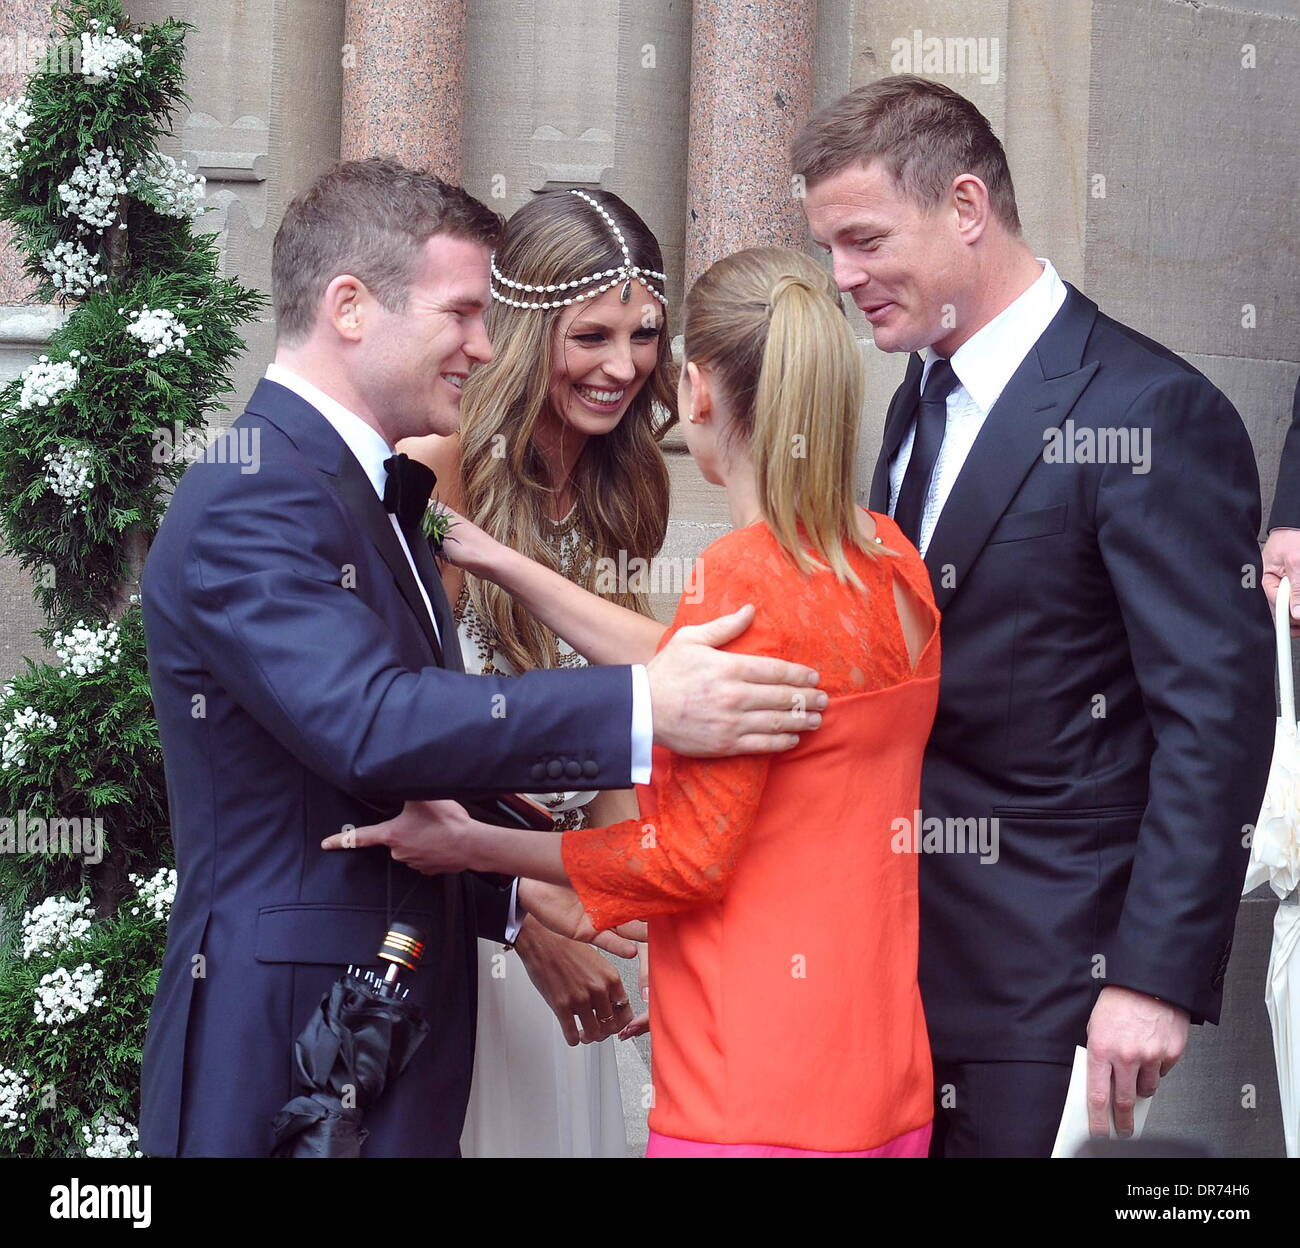 Gordon DArcy Aoife Cogan Brian ODriscoll And Amy Huberman The Wedding Of Model Rugby Star Held At St Macartans